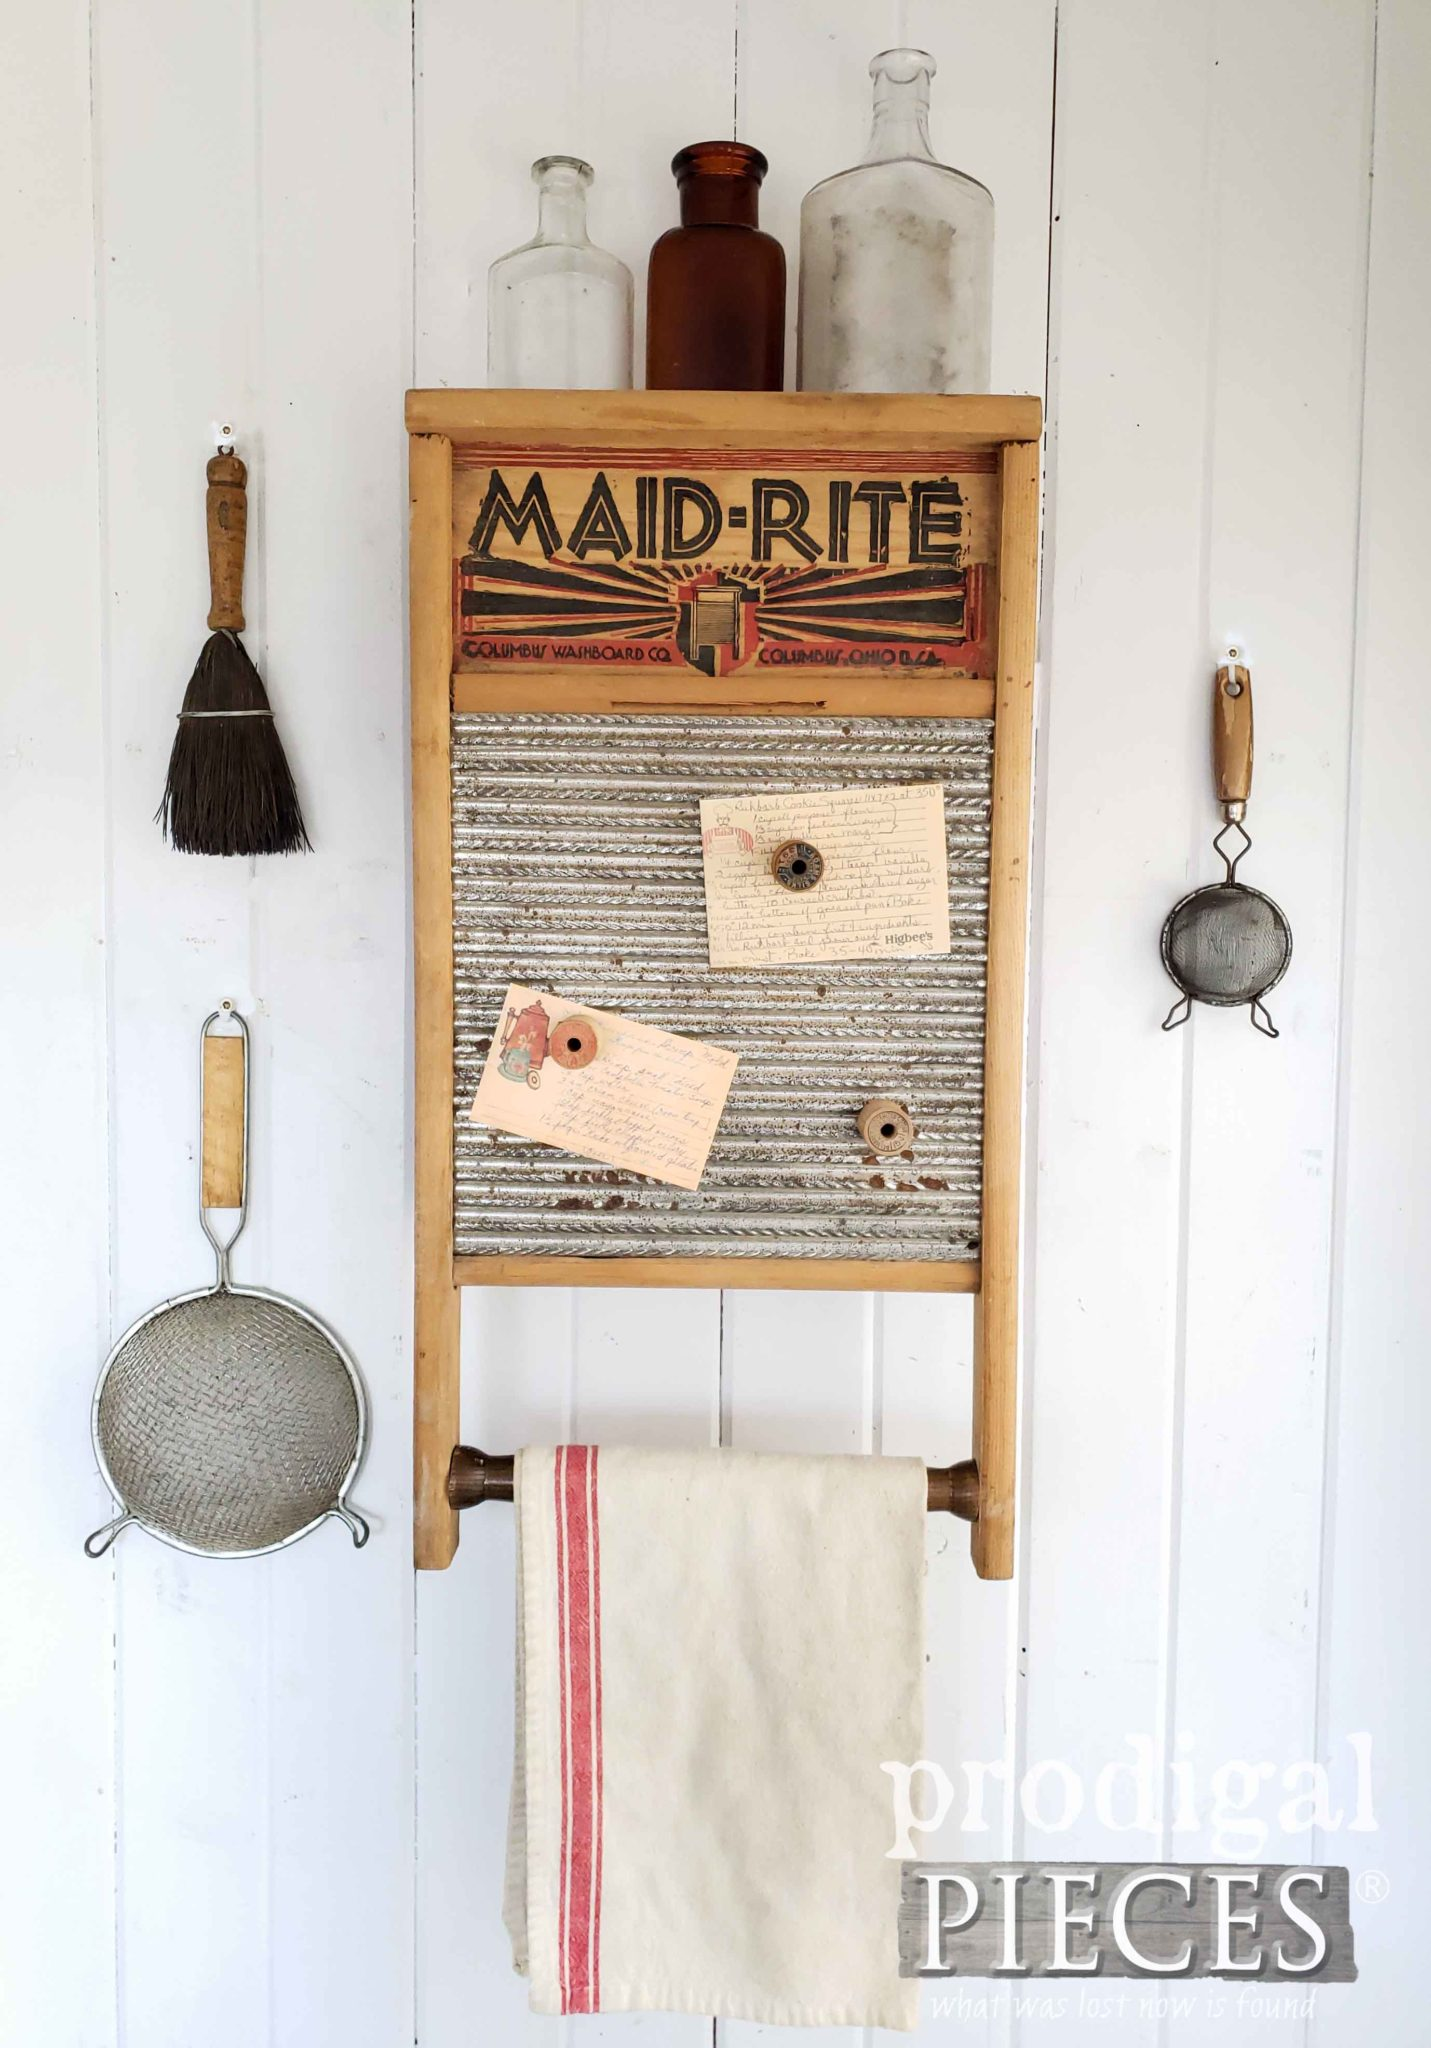 Upcycled Farmhouse Washboard Cupboard with Hidden Storage by Larissa of Prodigal Pieces   prodigalpieces.com #prodigalpieces #diy #handmade #home #farmhouse #homedecor #vintage #retro